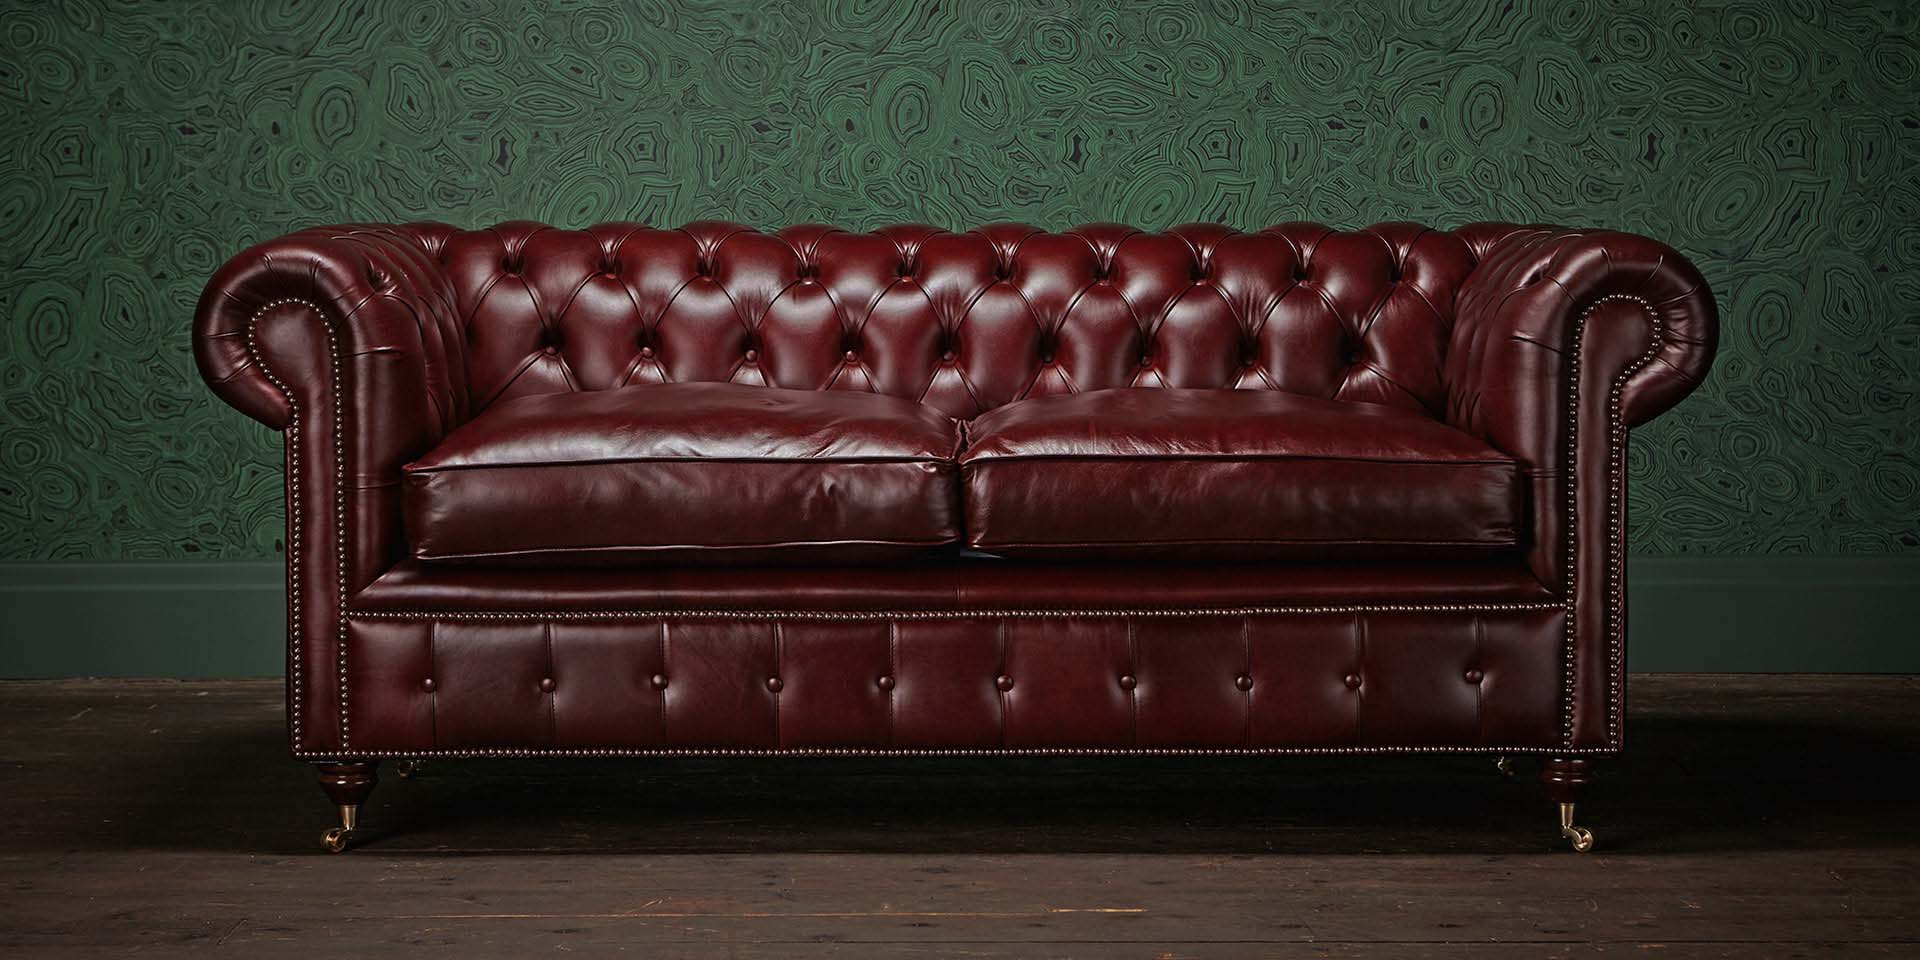 Gorgeous leather chesterfield sofa from: £936.92click here to buy jsvfviq